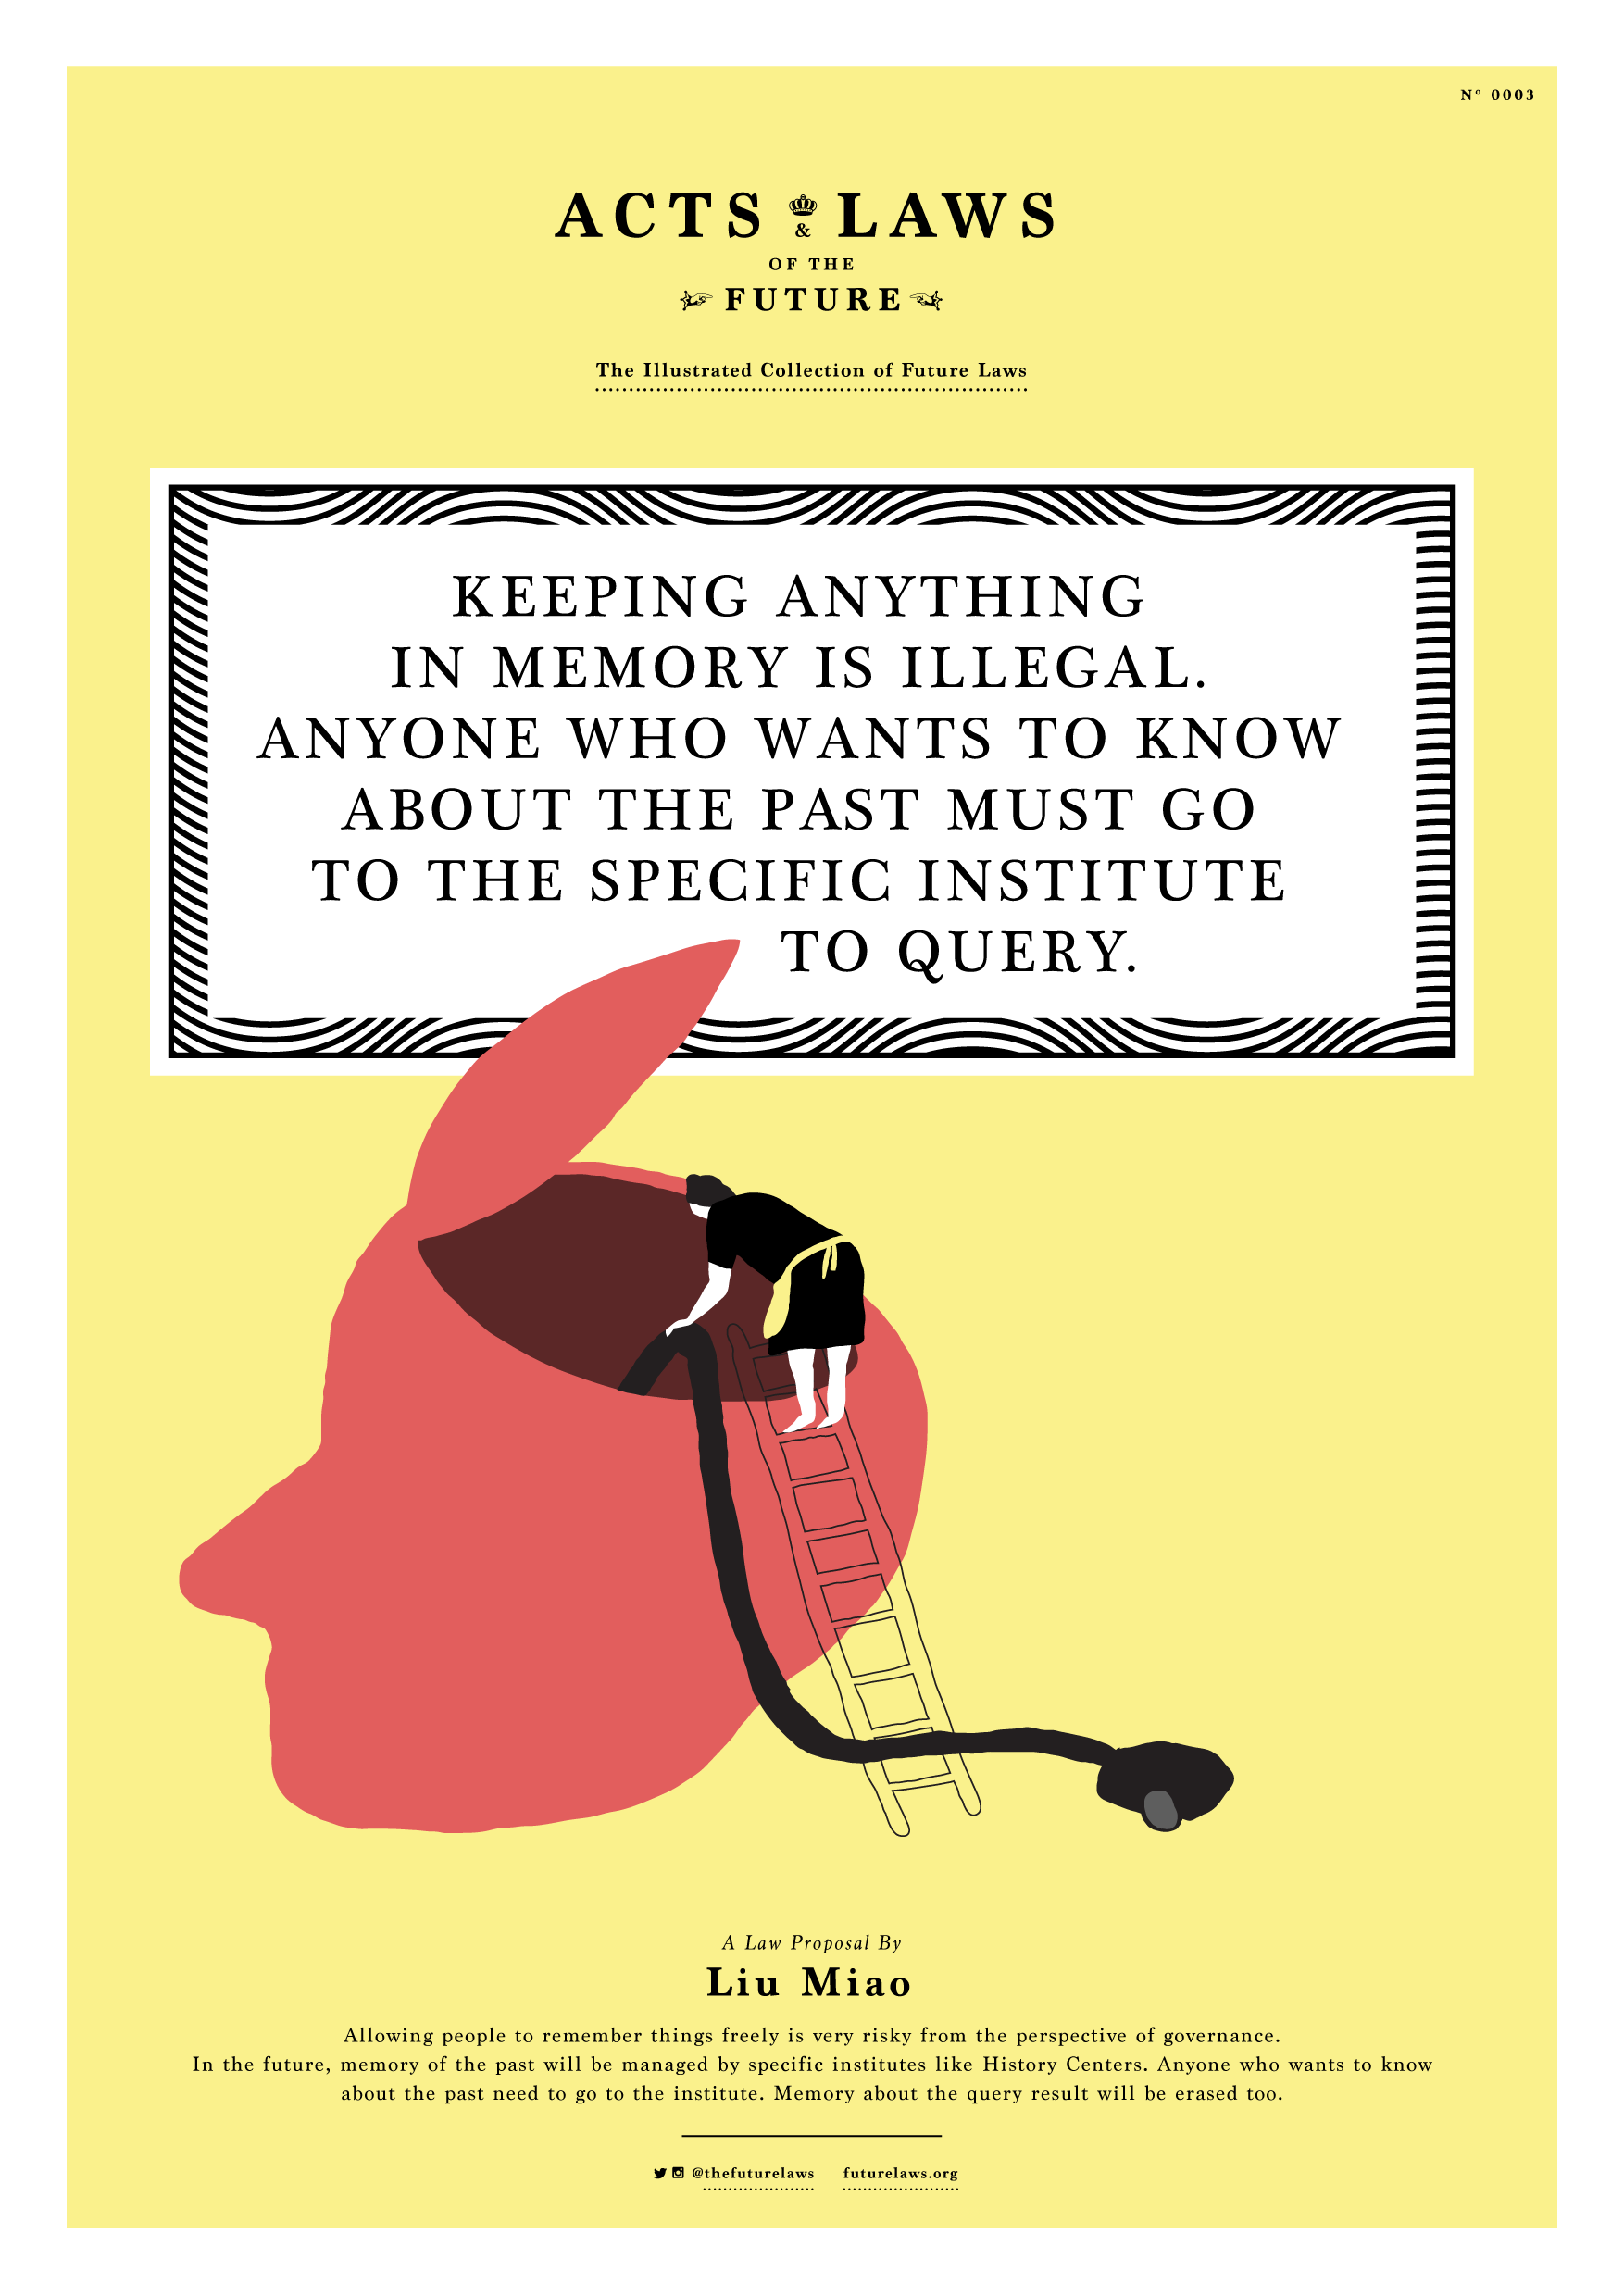 Keeping anything in memory is illegal. Anyone who wants to know about the past must go to the specific institute to query.